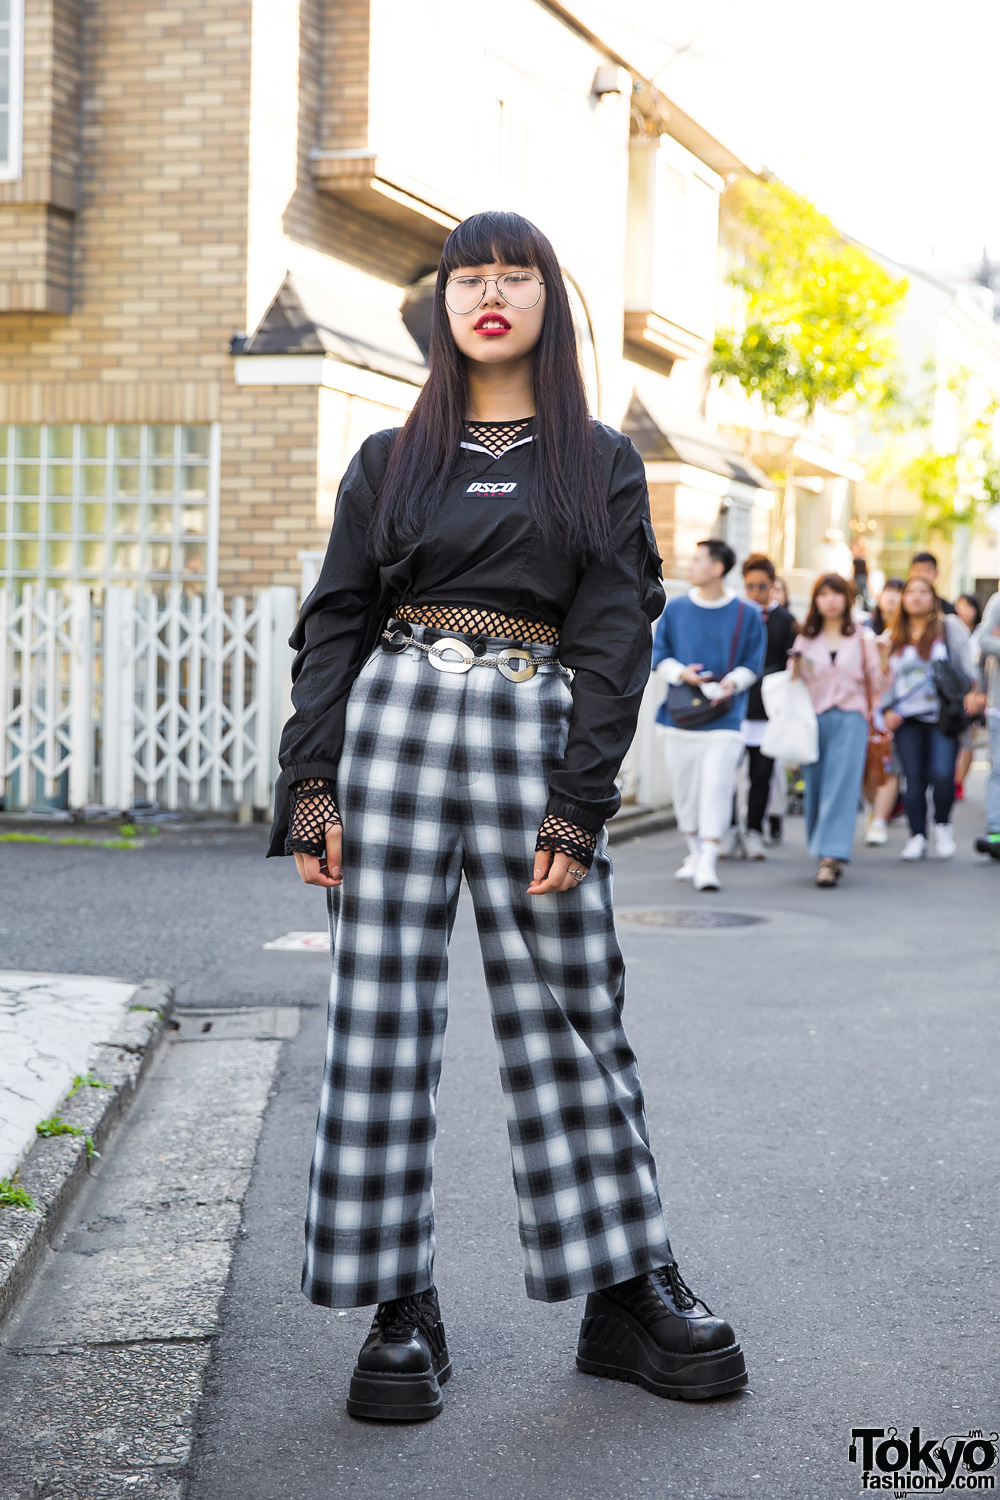 Harajuku Girl In Dark Plaid Street Style W Drinkscancode